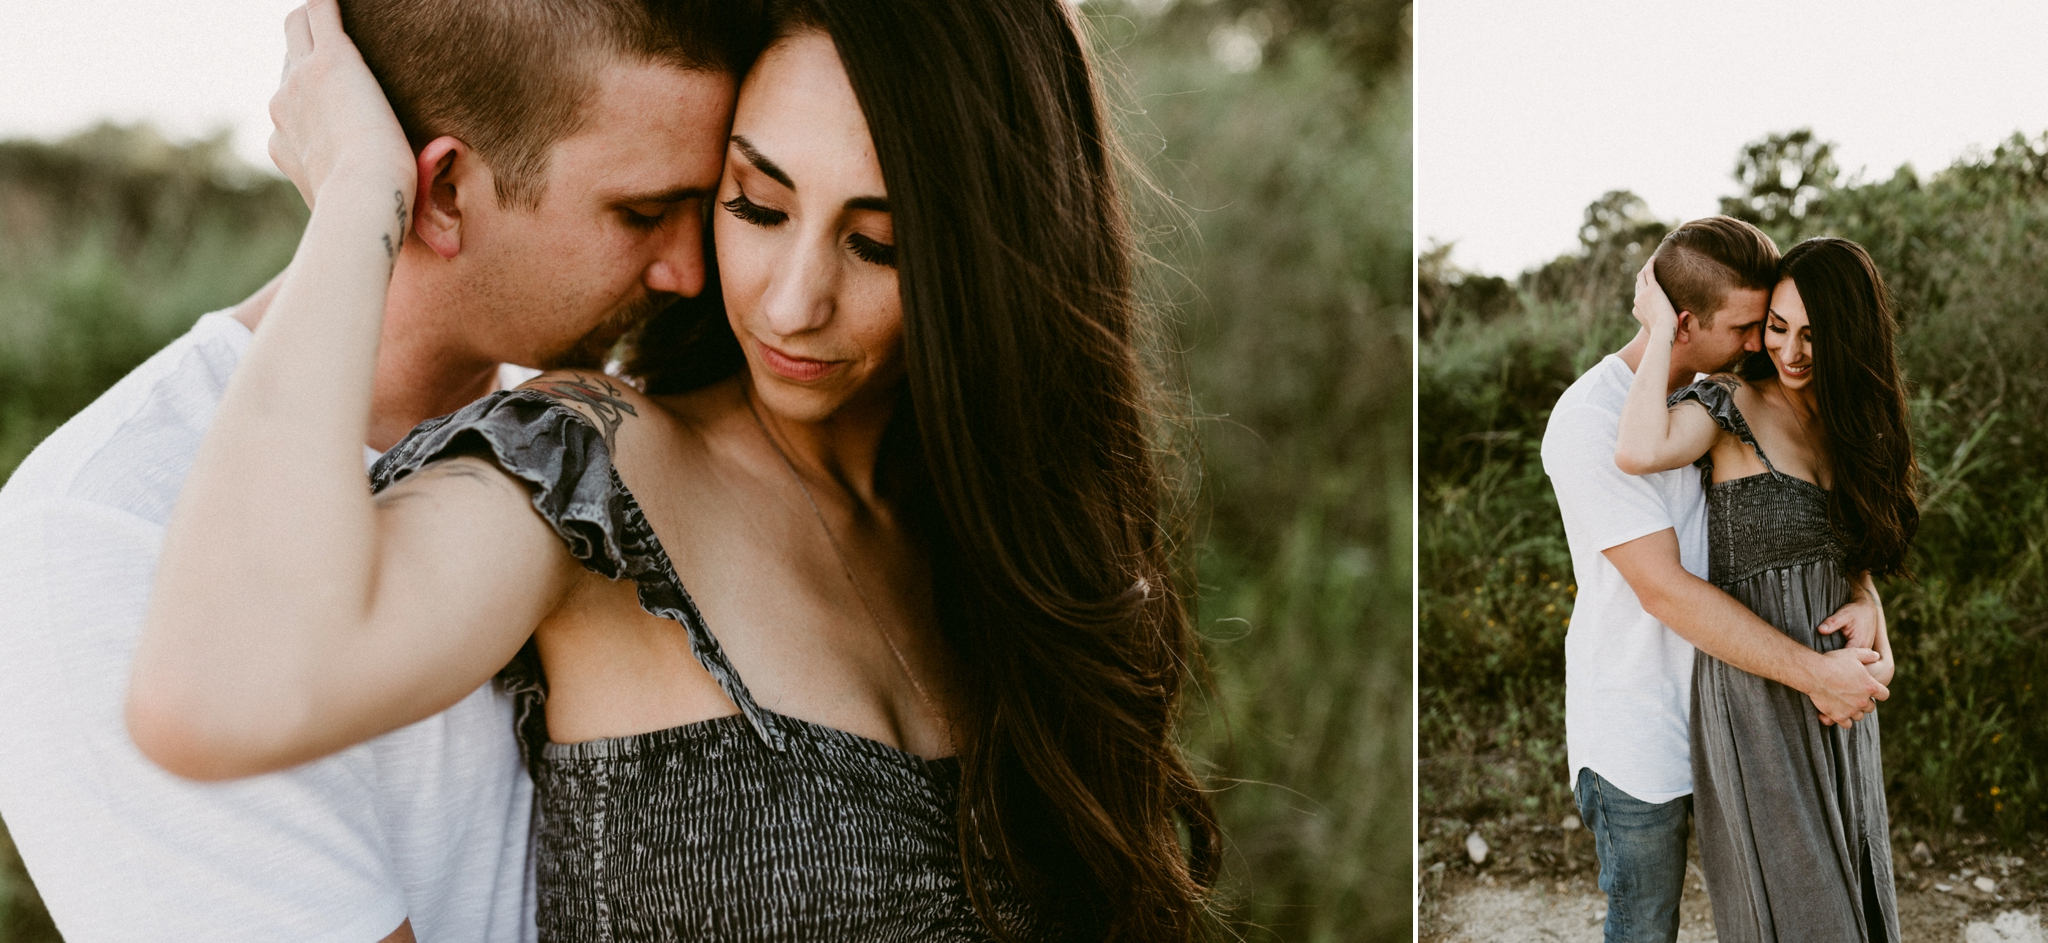 Mckinney-Falls-State-Park-Emotive-Intimate-Outdoor-River-Waterfalls-Engagement-Session-Austin-Wedding-Photographer